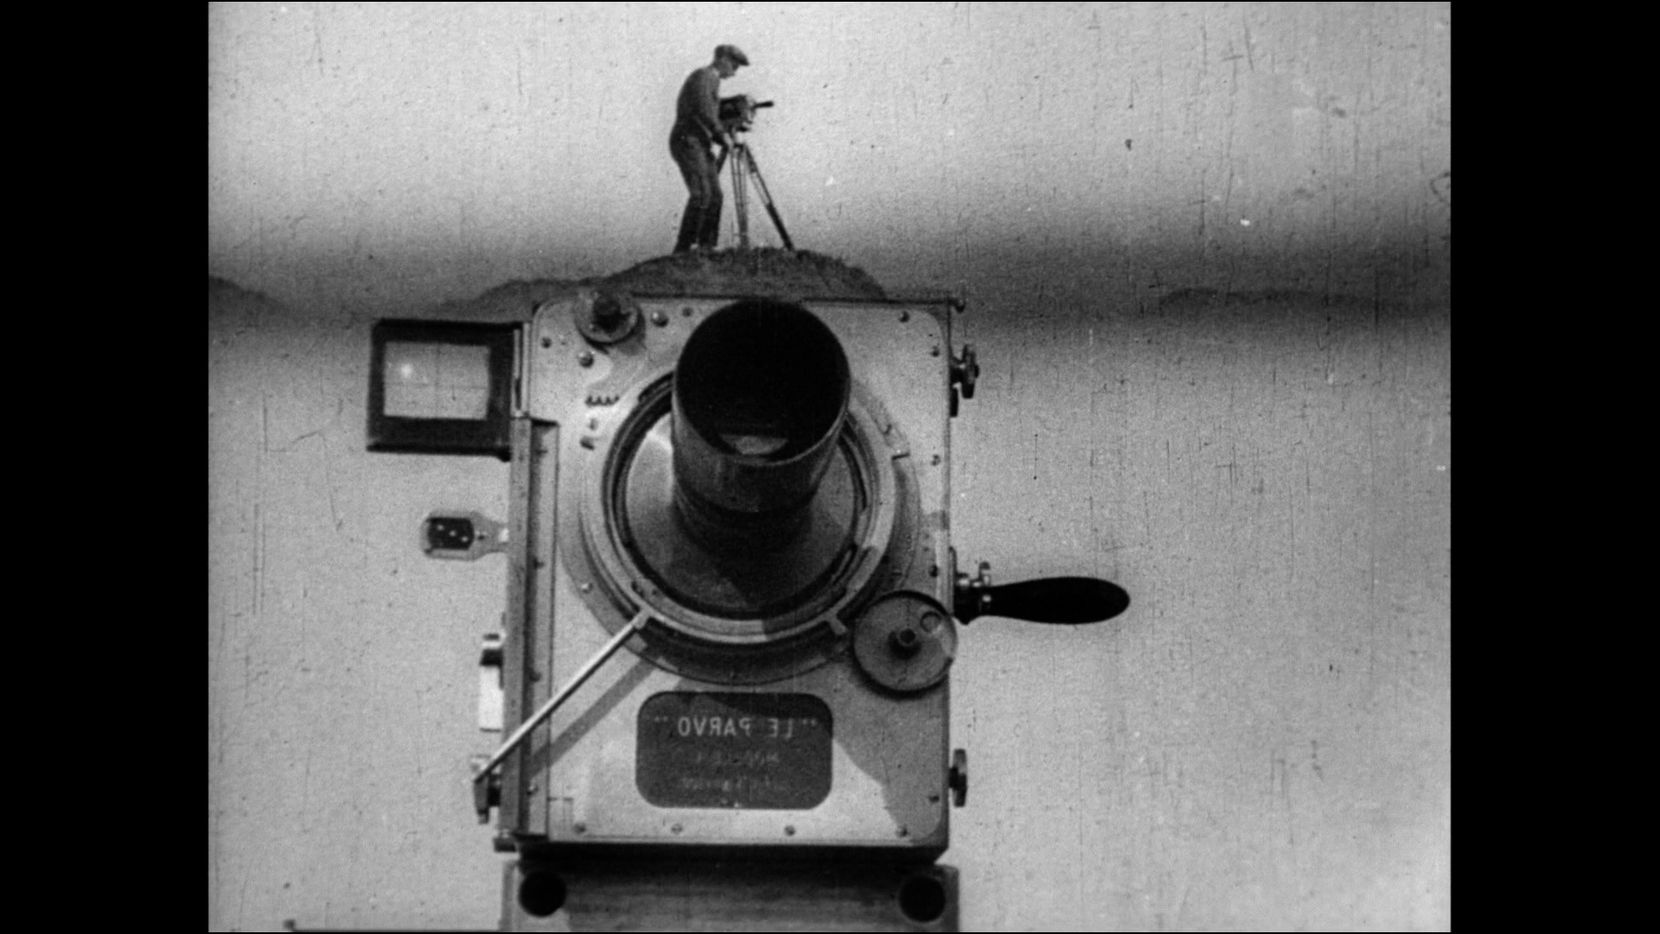 """DocuFest, the Dallas Video Festival's annual screening of documentaries, opens Wednesday at the Texas Theatre with an appropriate title, the 1929 silent movie """"Man with a Movie Camera,"""" whose stated mission was to establish film as its own medium separate from the other arts."""